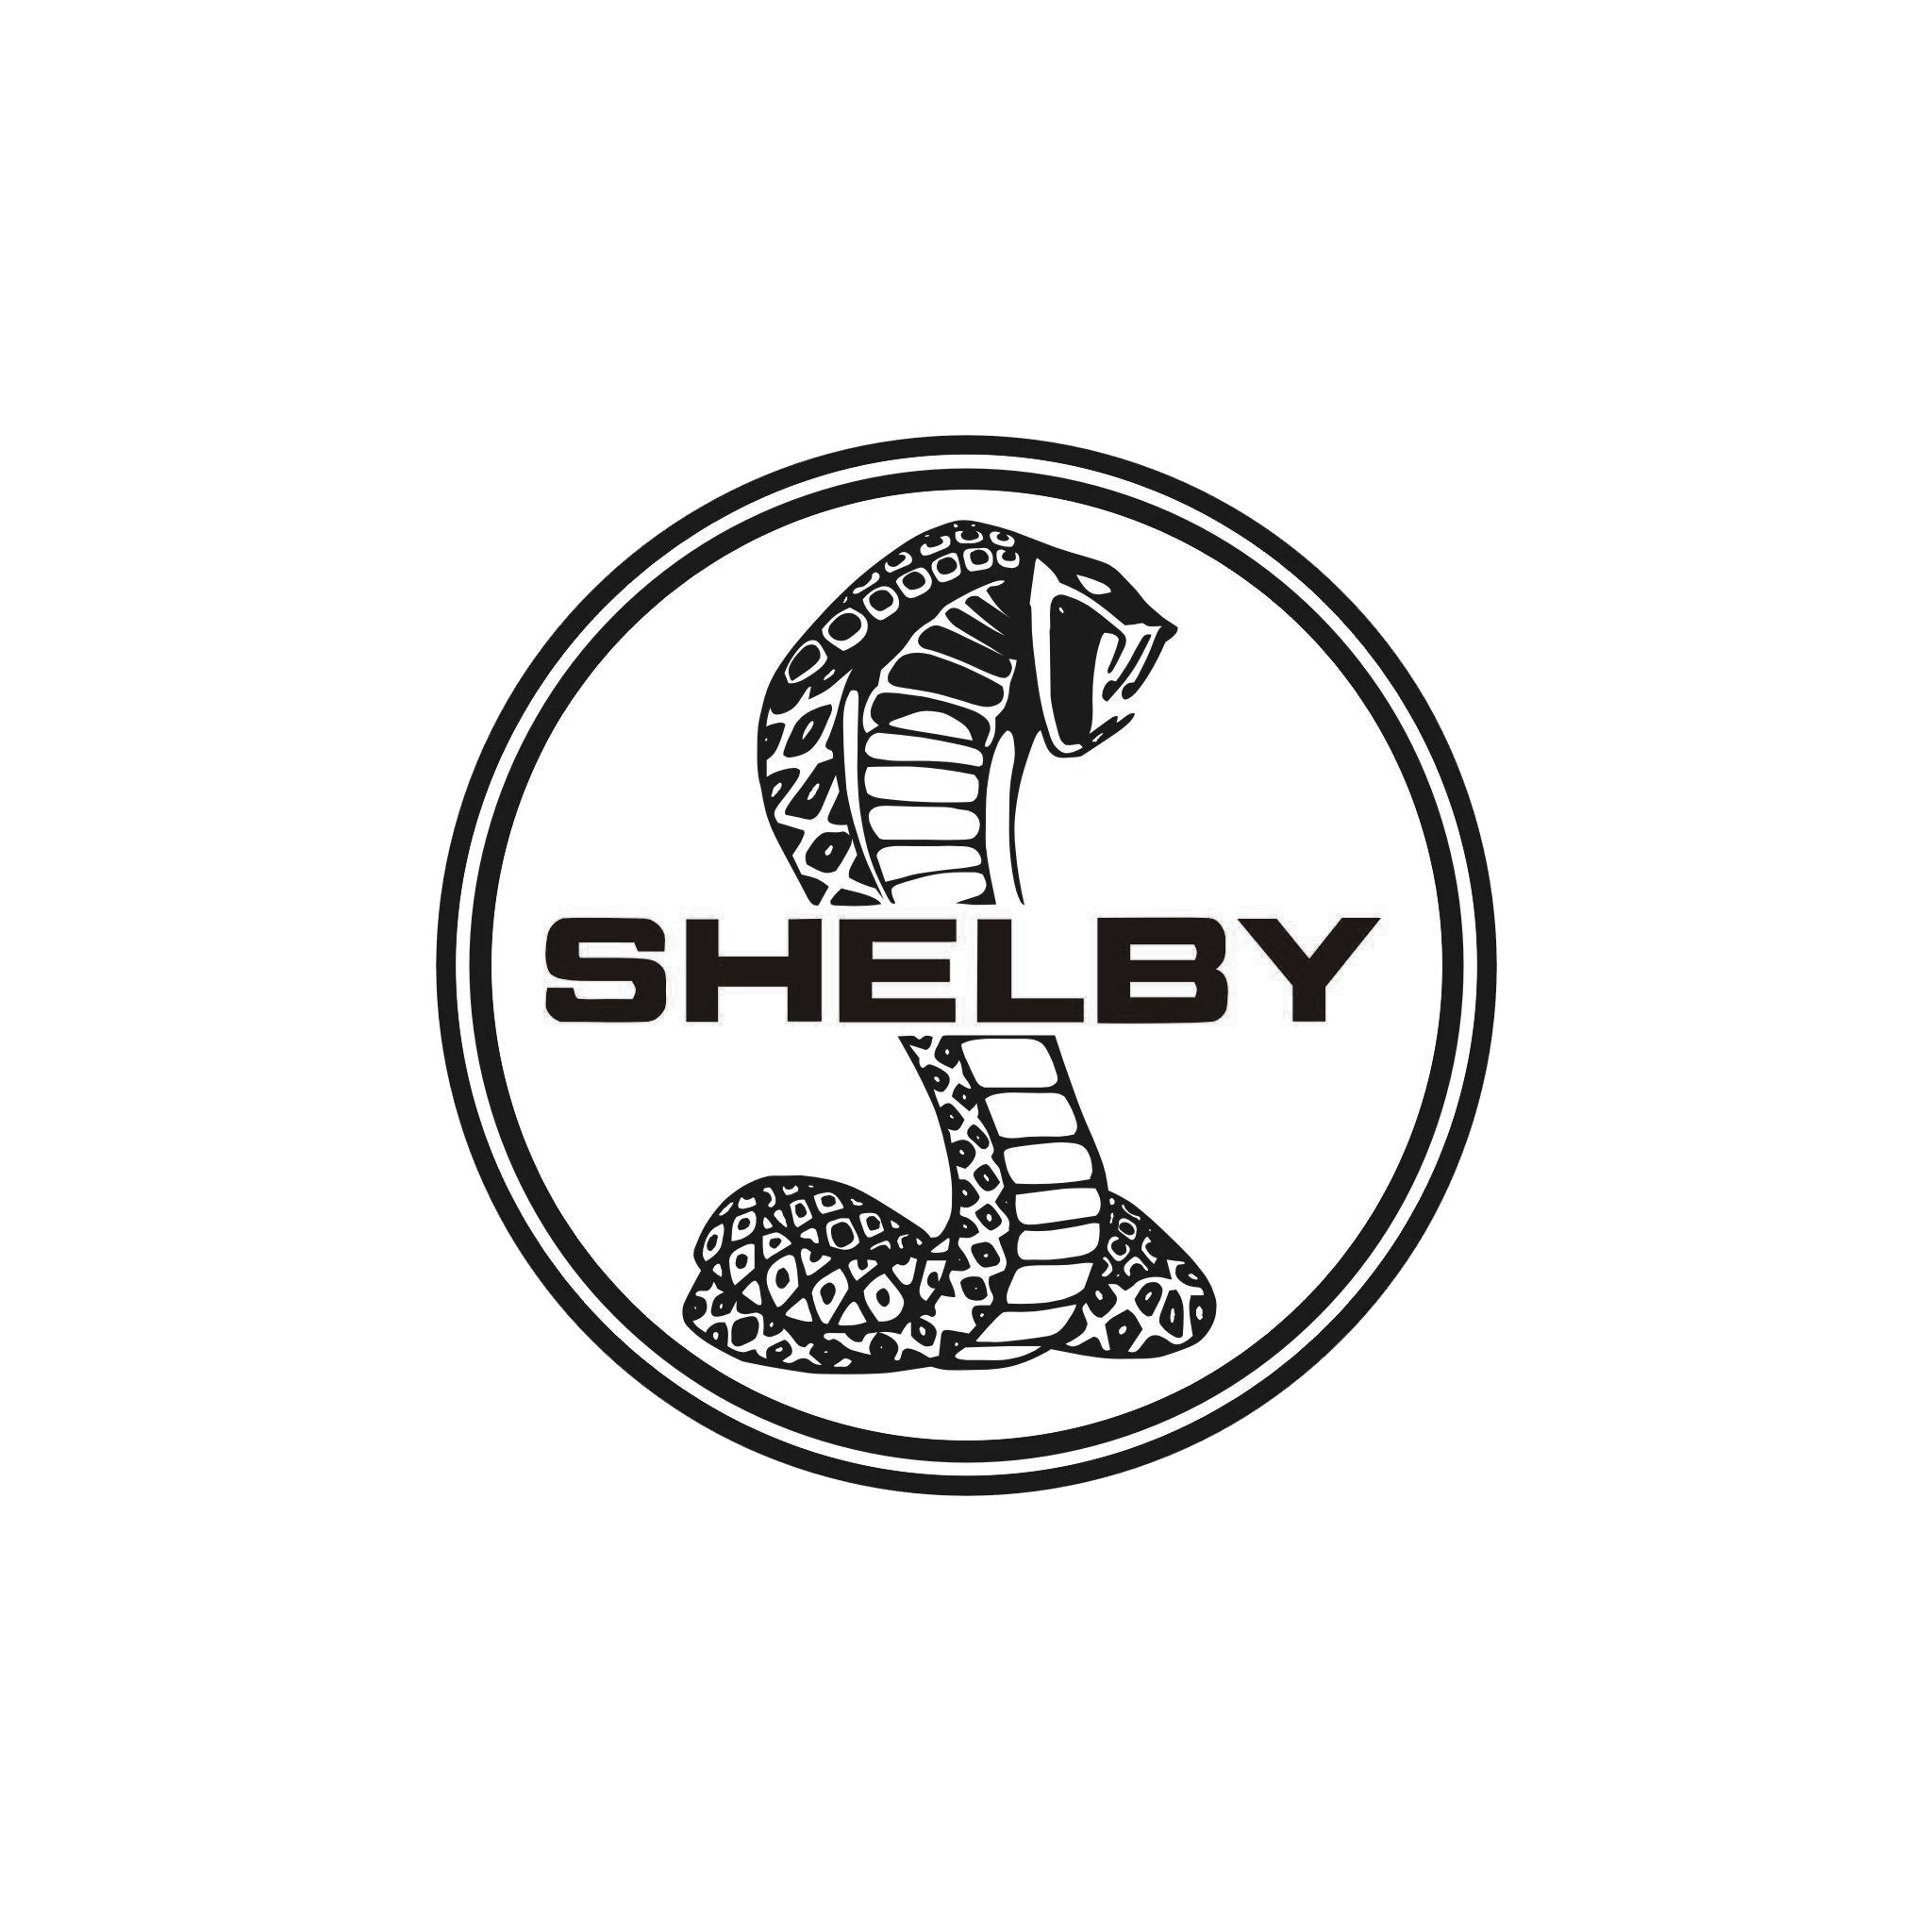 Shelby Symbol 2048x2048 Hd Png Shelby Logo Mustang Shelby Ford Mustang Car